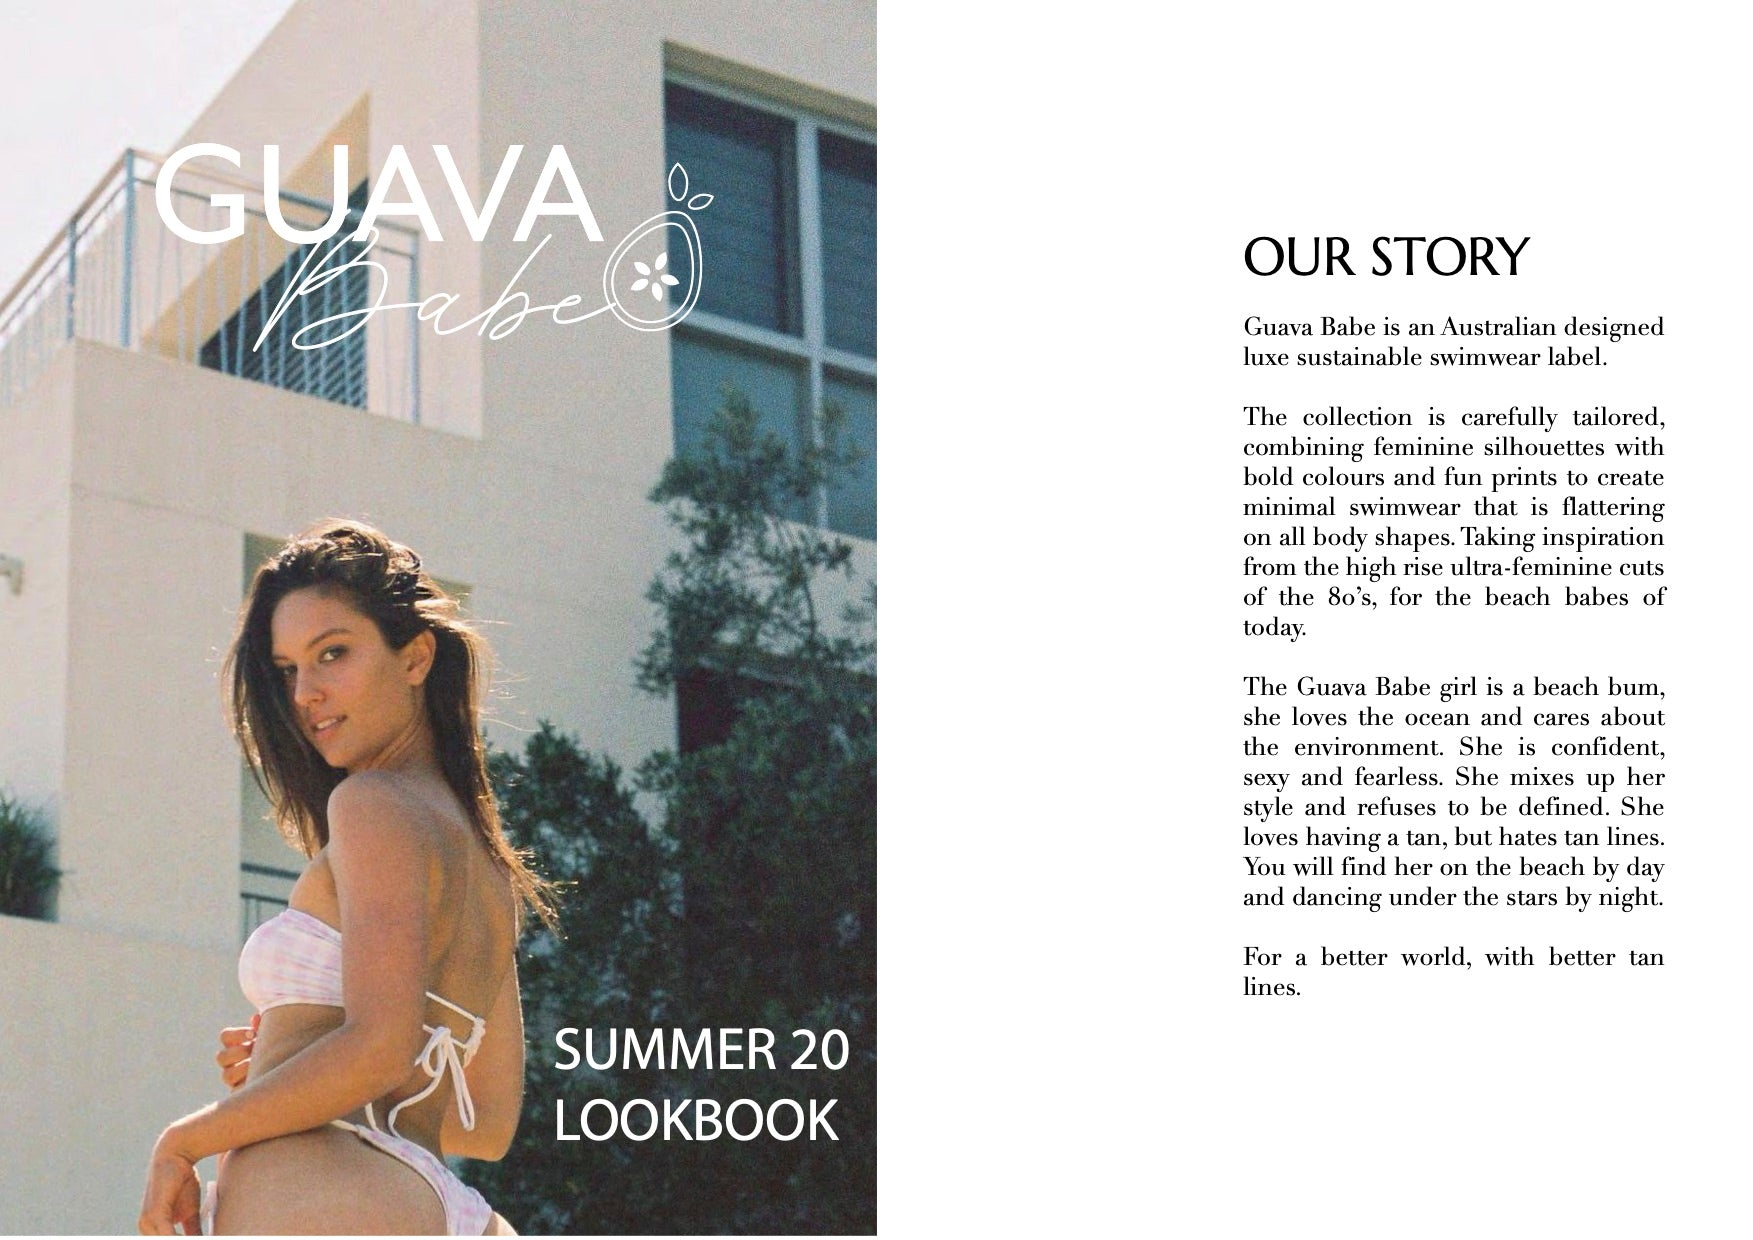 Guava Babe lookbook - our story